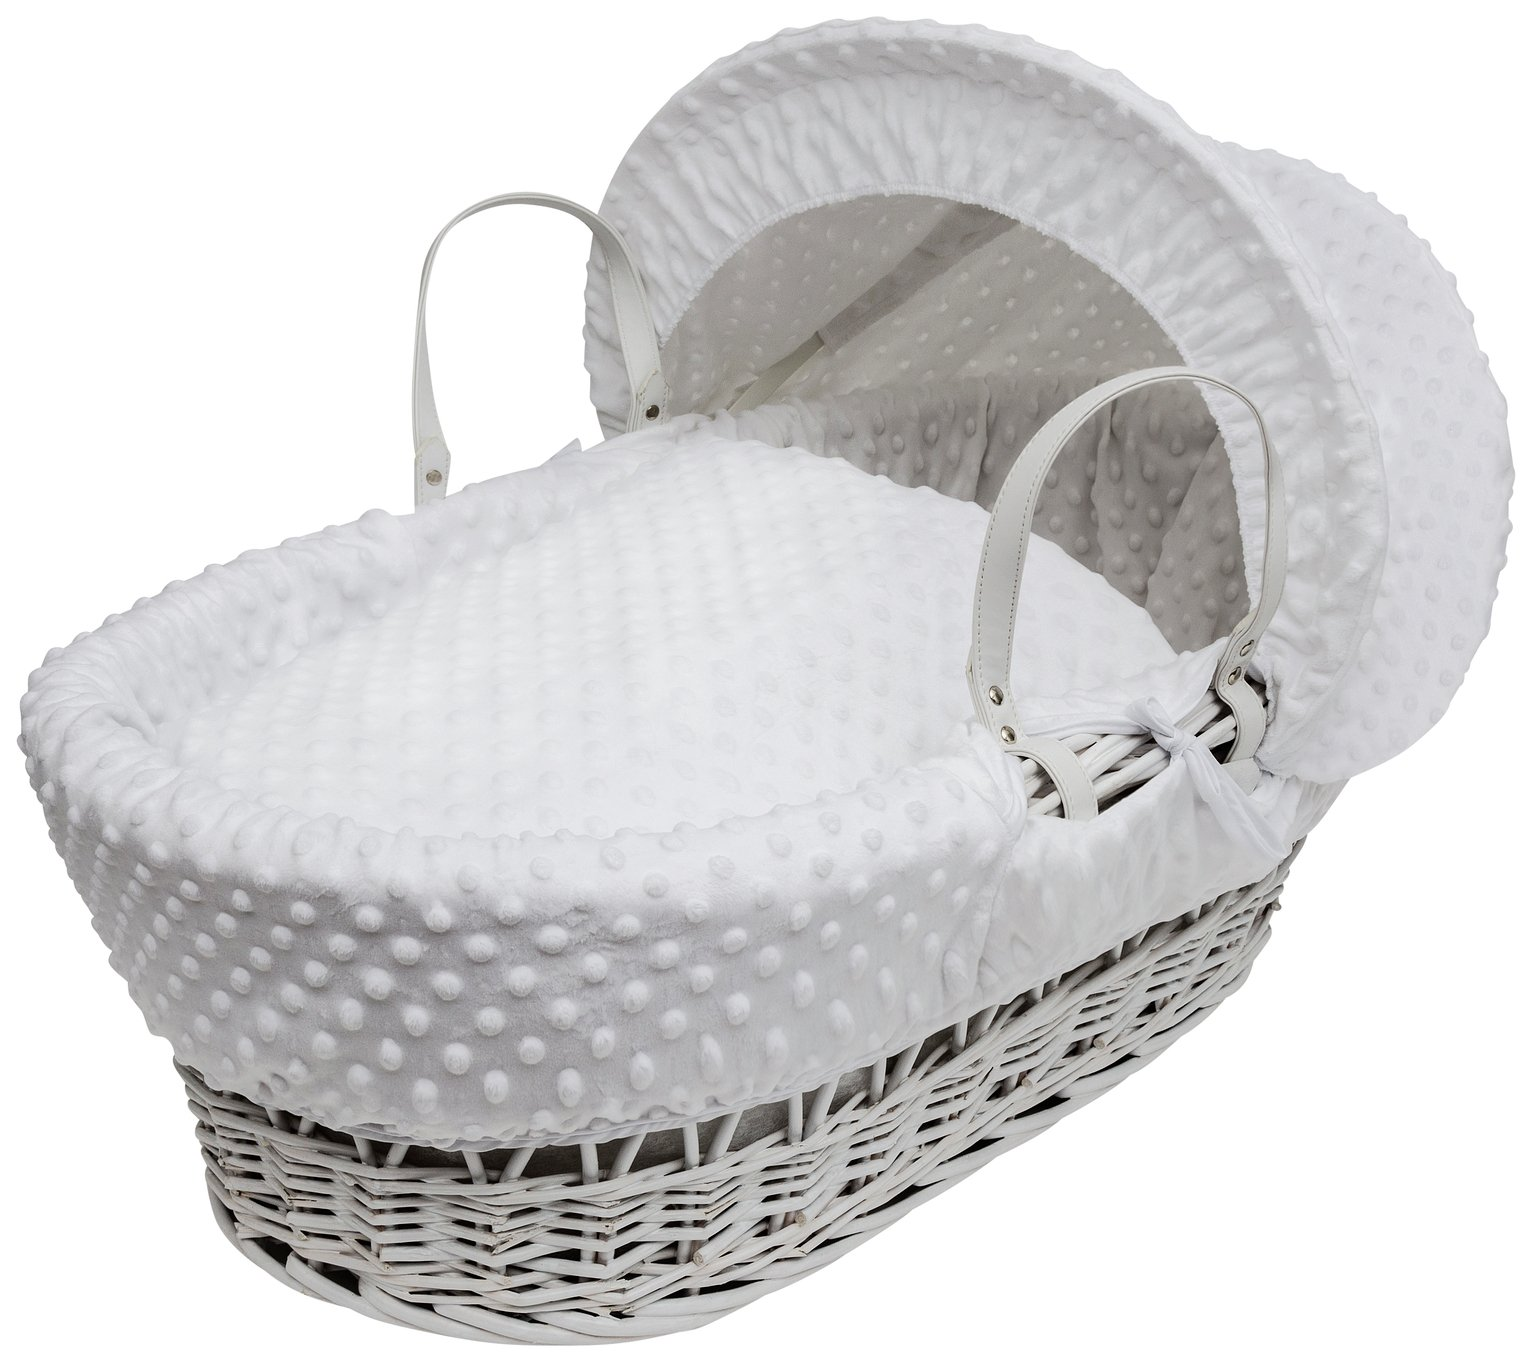 Kinder Valley White Dimple White Wicker Basket